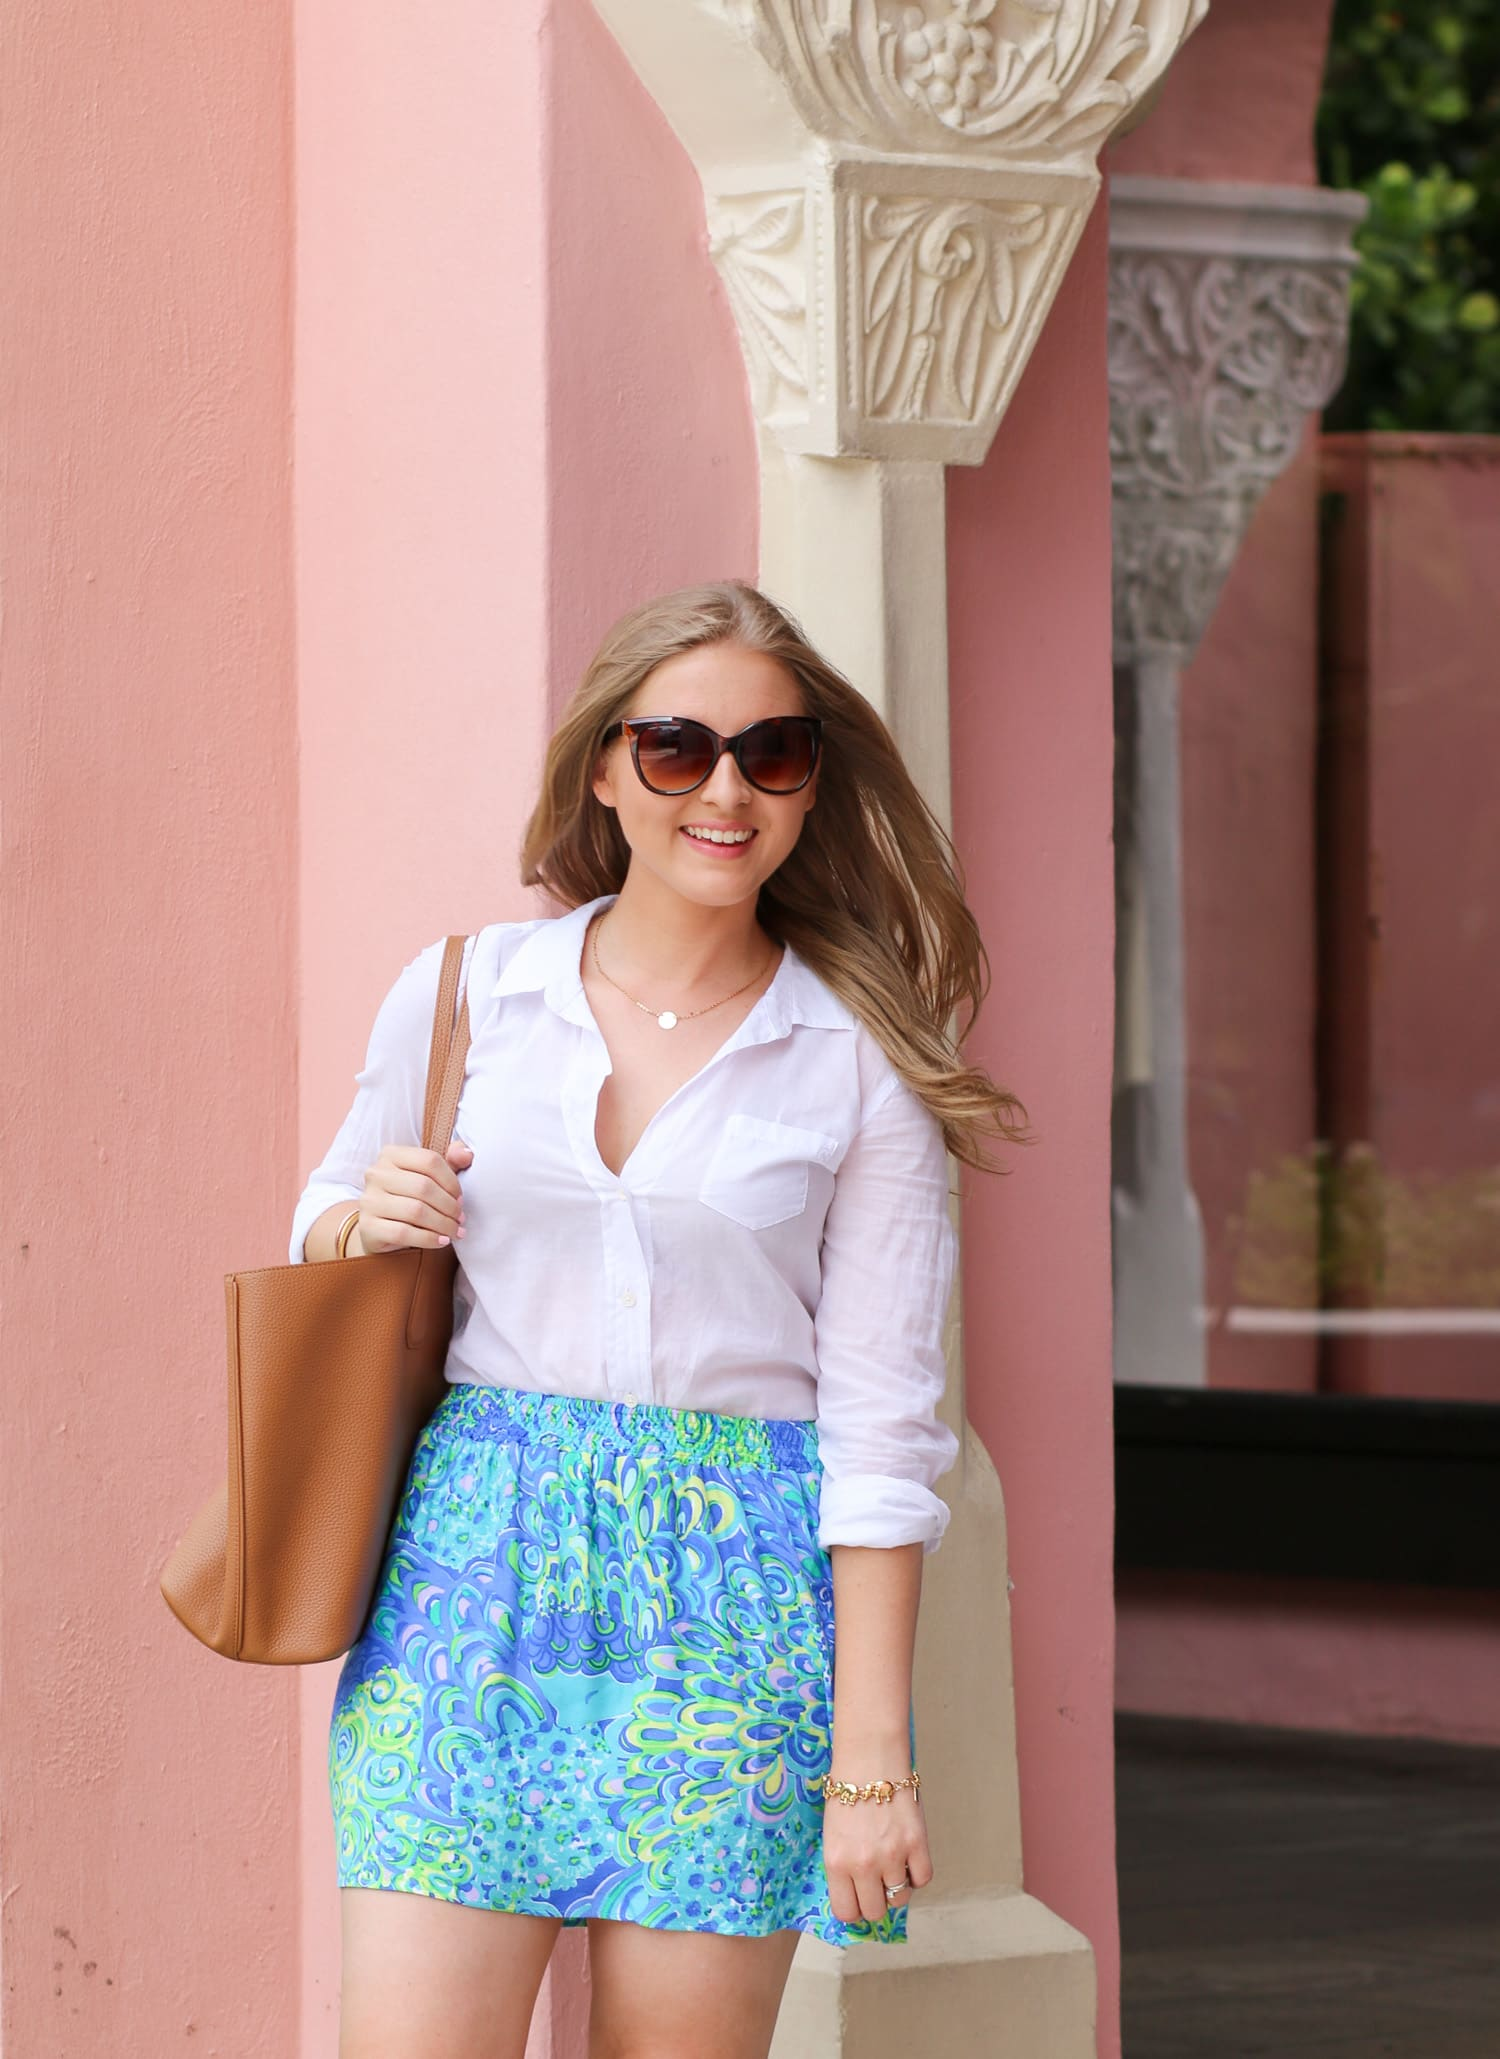 Lilly Pulitzer skirt and white button-down blogger outfit + A full review of the Boca Raton Resort & Club by blogger Ashley Brooke Nicholas